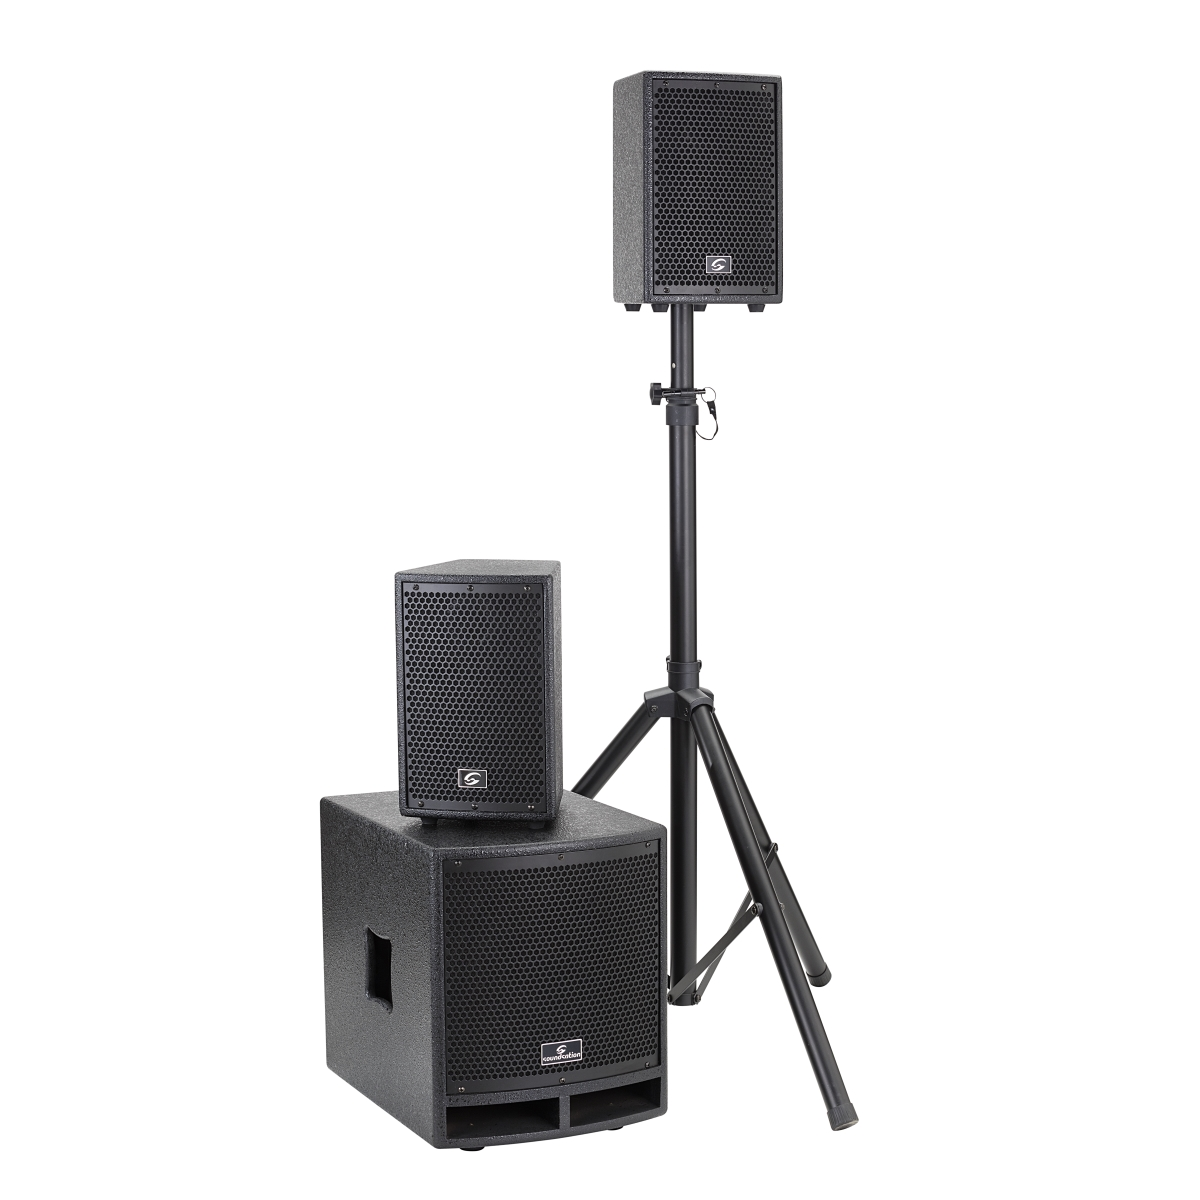 SISTEMA PA 2.1 SOUNDSATION LIVEMAKER 1021 MIX 900W. 2x6.5